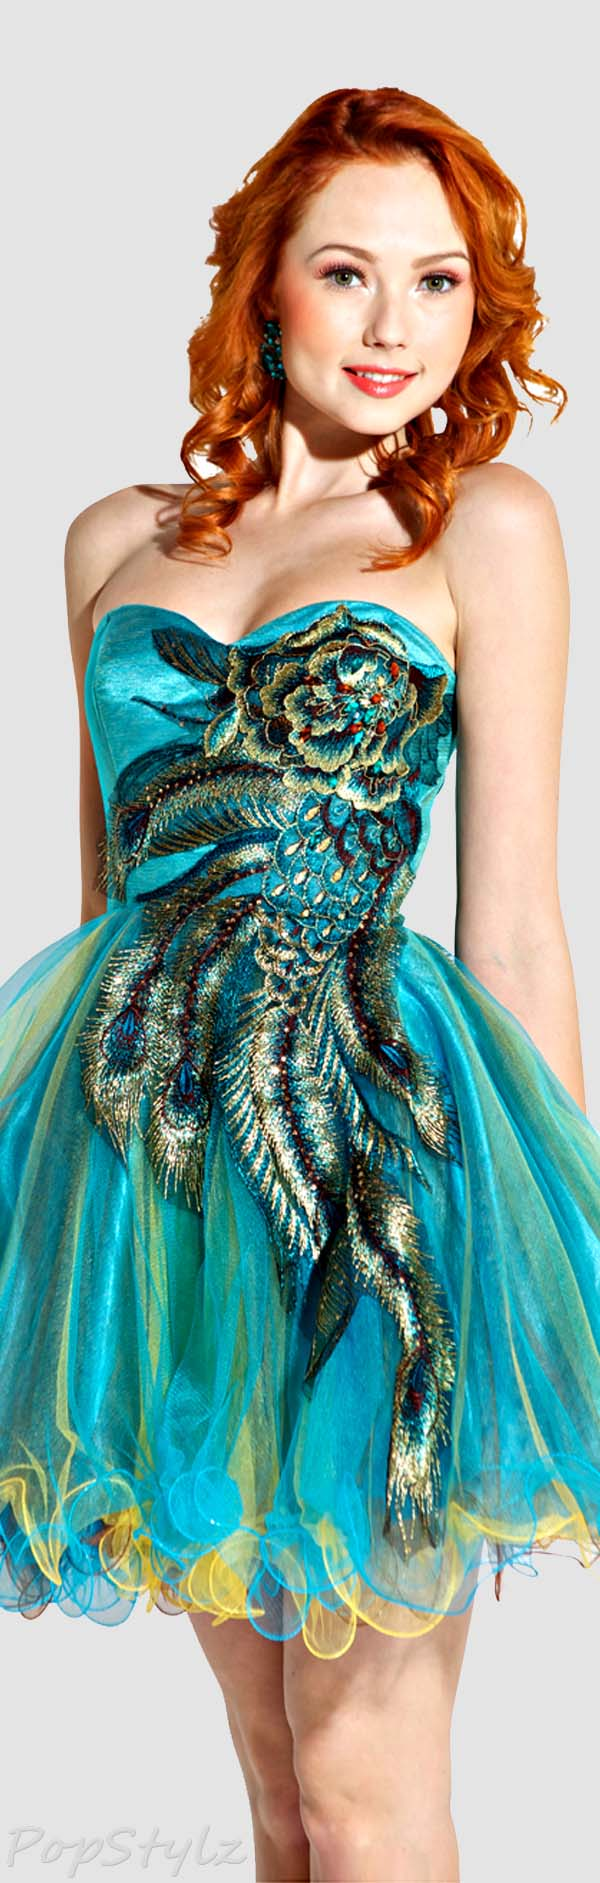 PacificPlex Metallic Peacock Embroidered Dress